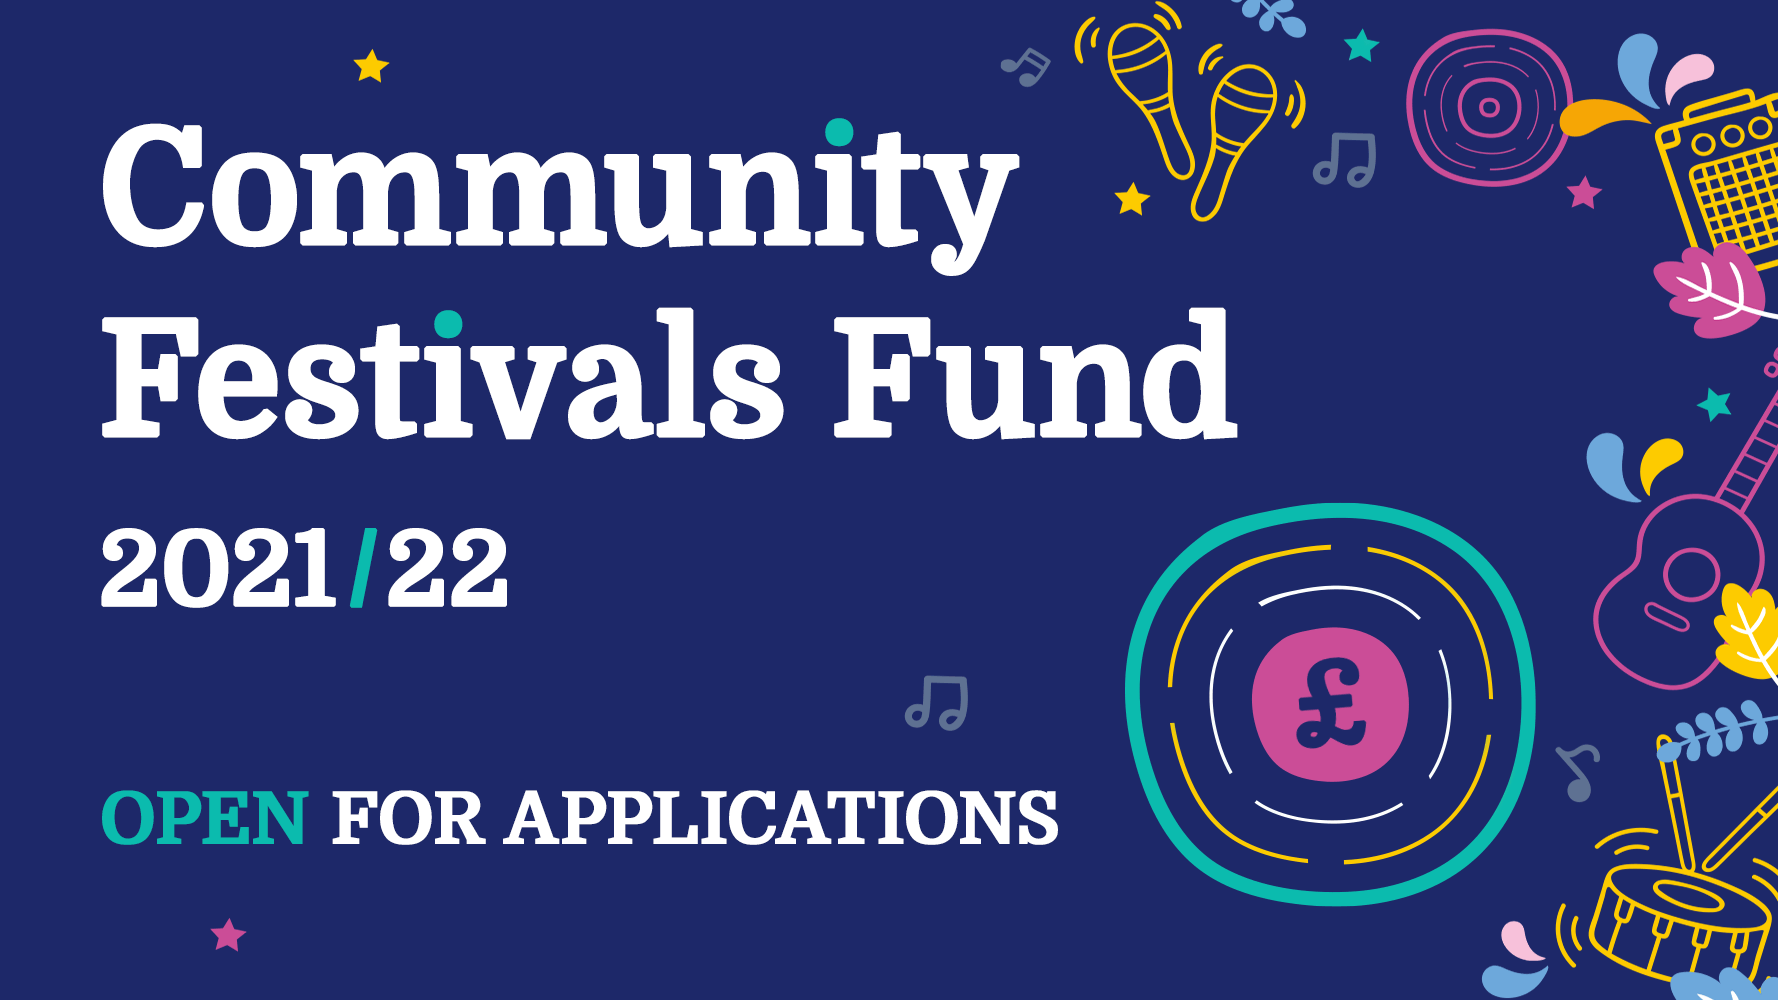 Our Community Festivals Fund is now open for applications!